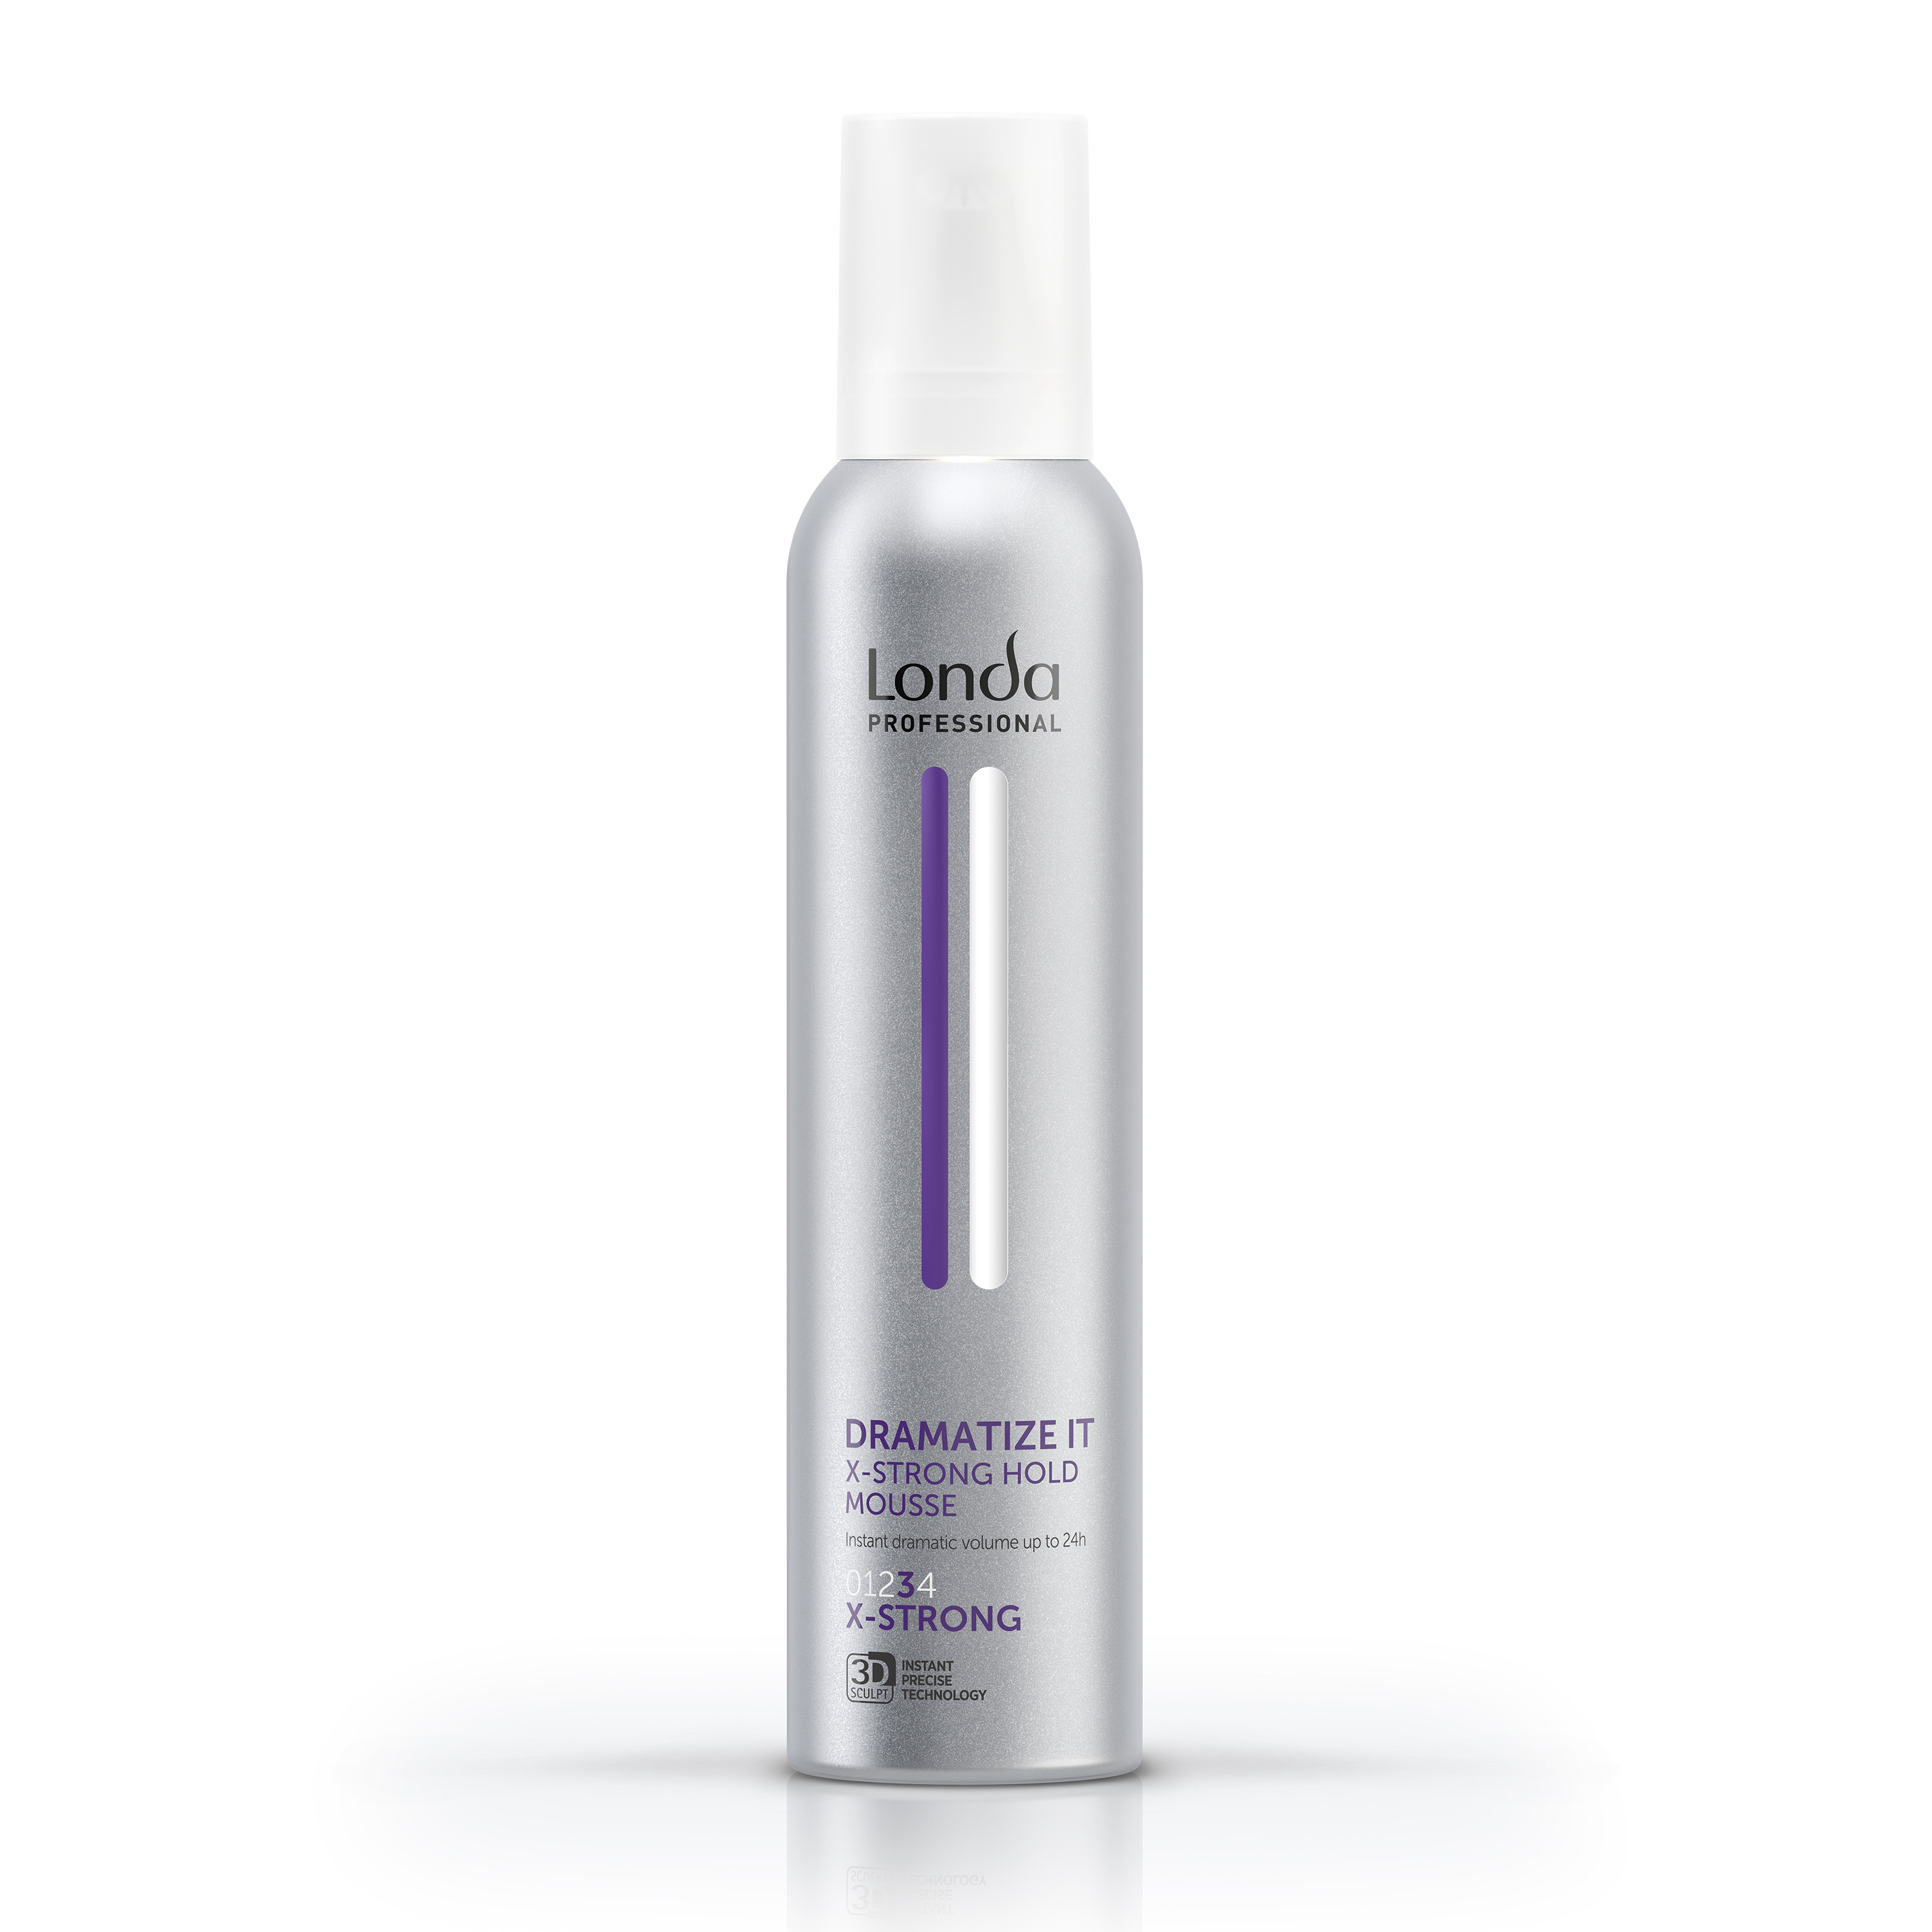 Londa Professional Dramatize It X-Strong Hold Mousse 250 ml